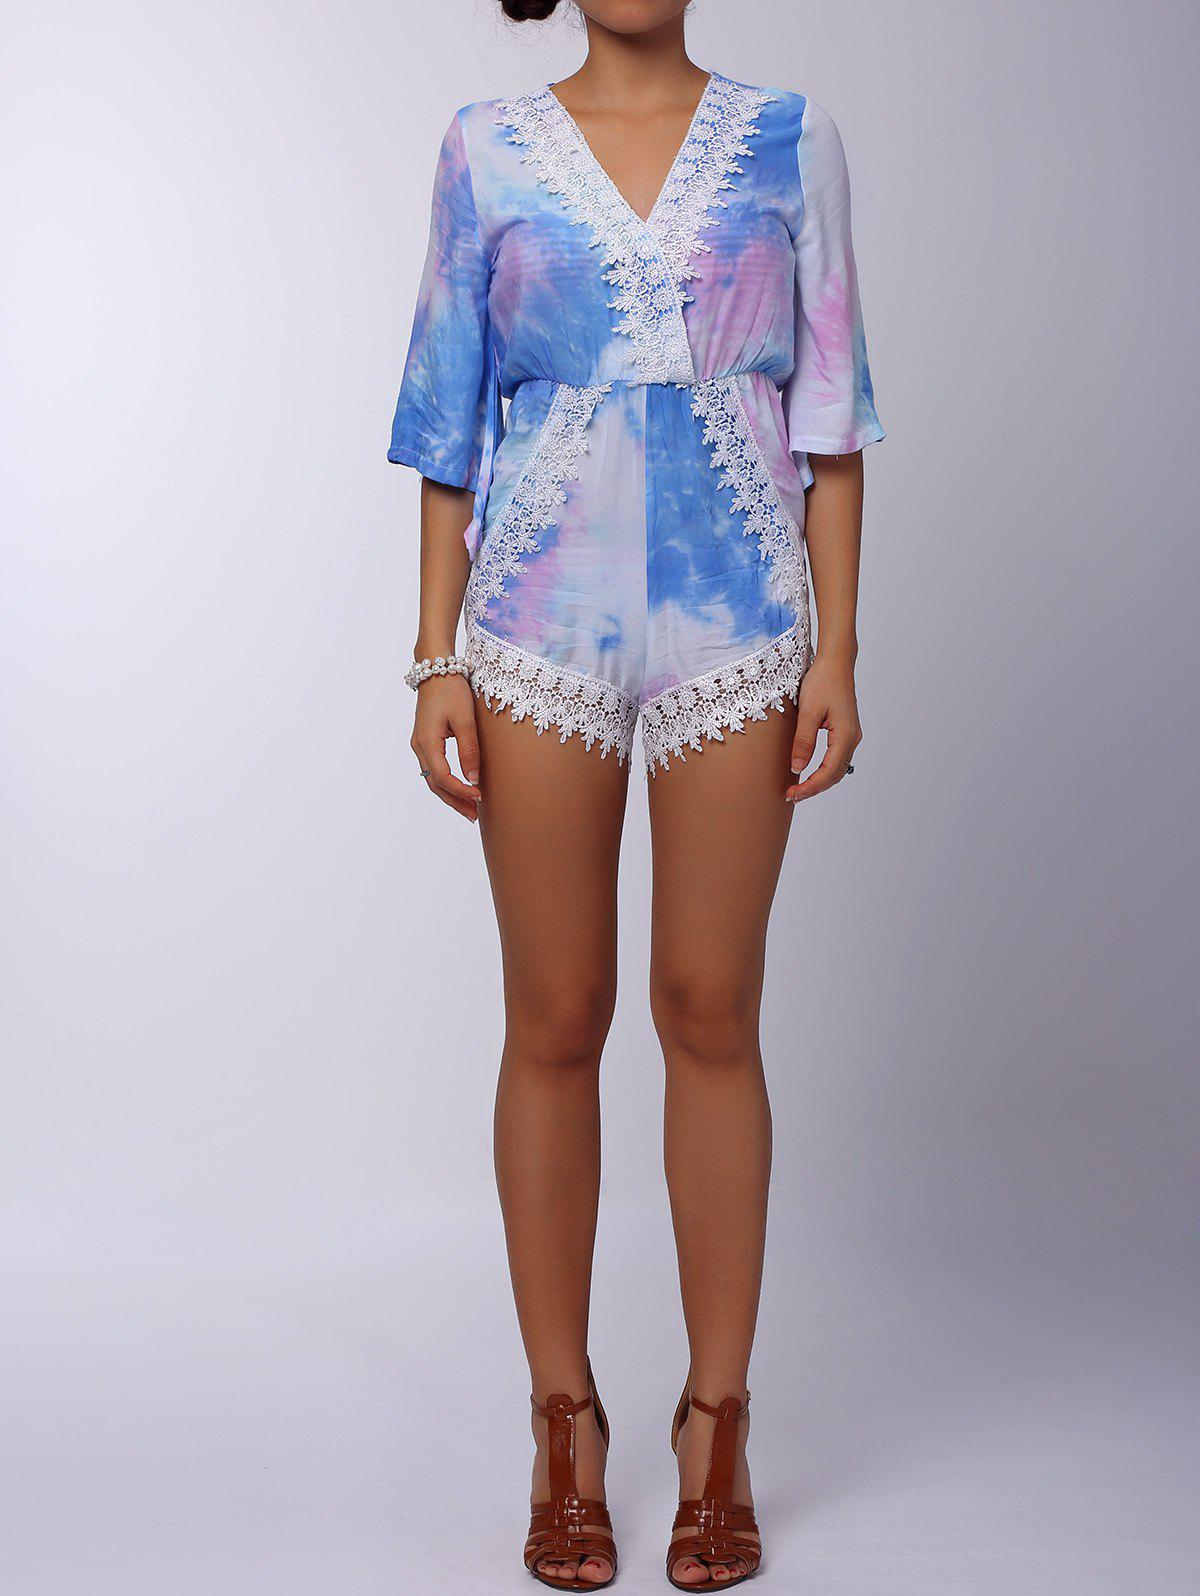 Stylish 3/4 Sleeve Plunging Neck Printed Lace Embellished Women's Romper - COLORFUL S